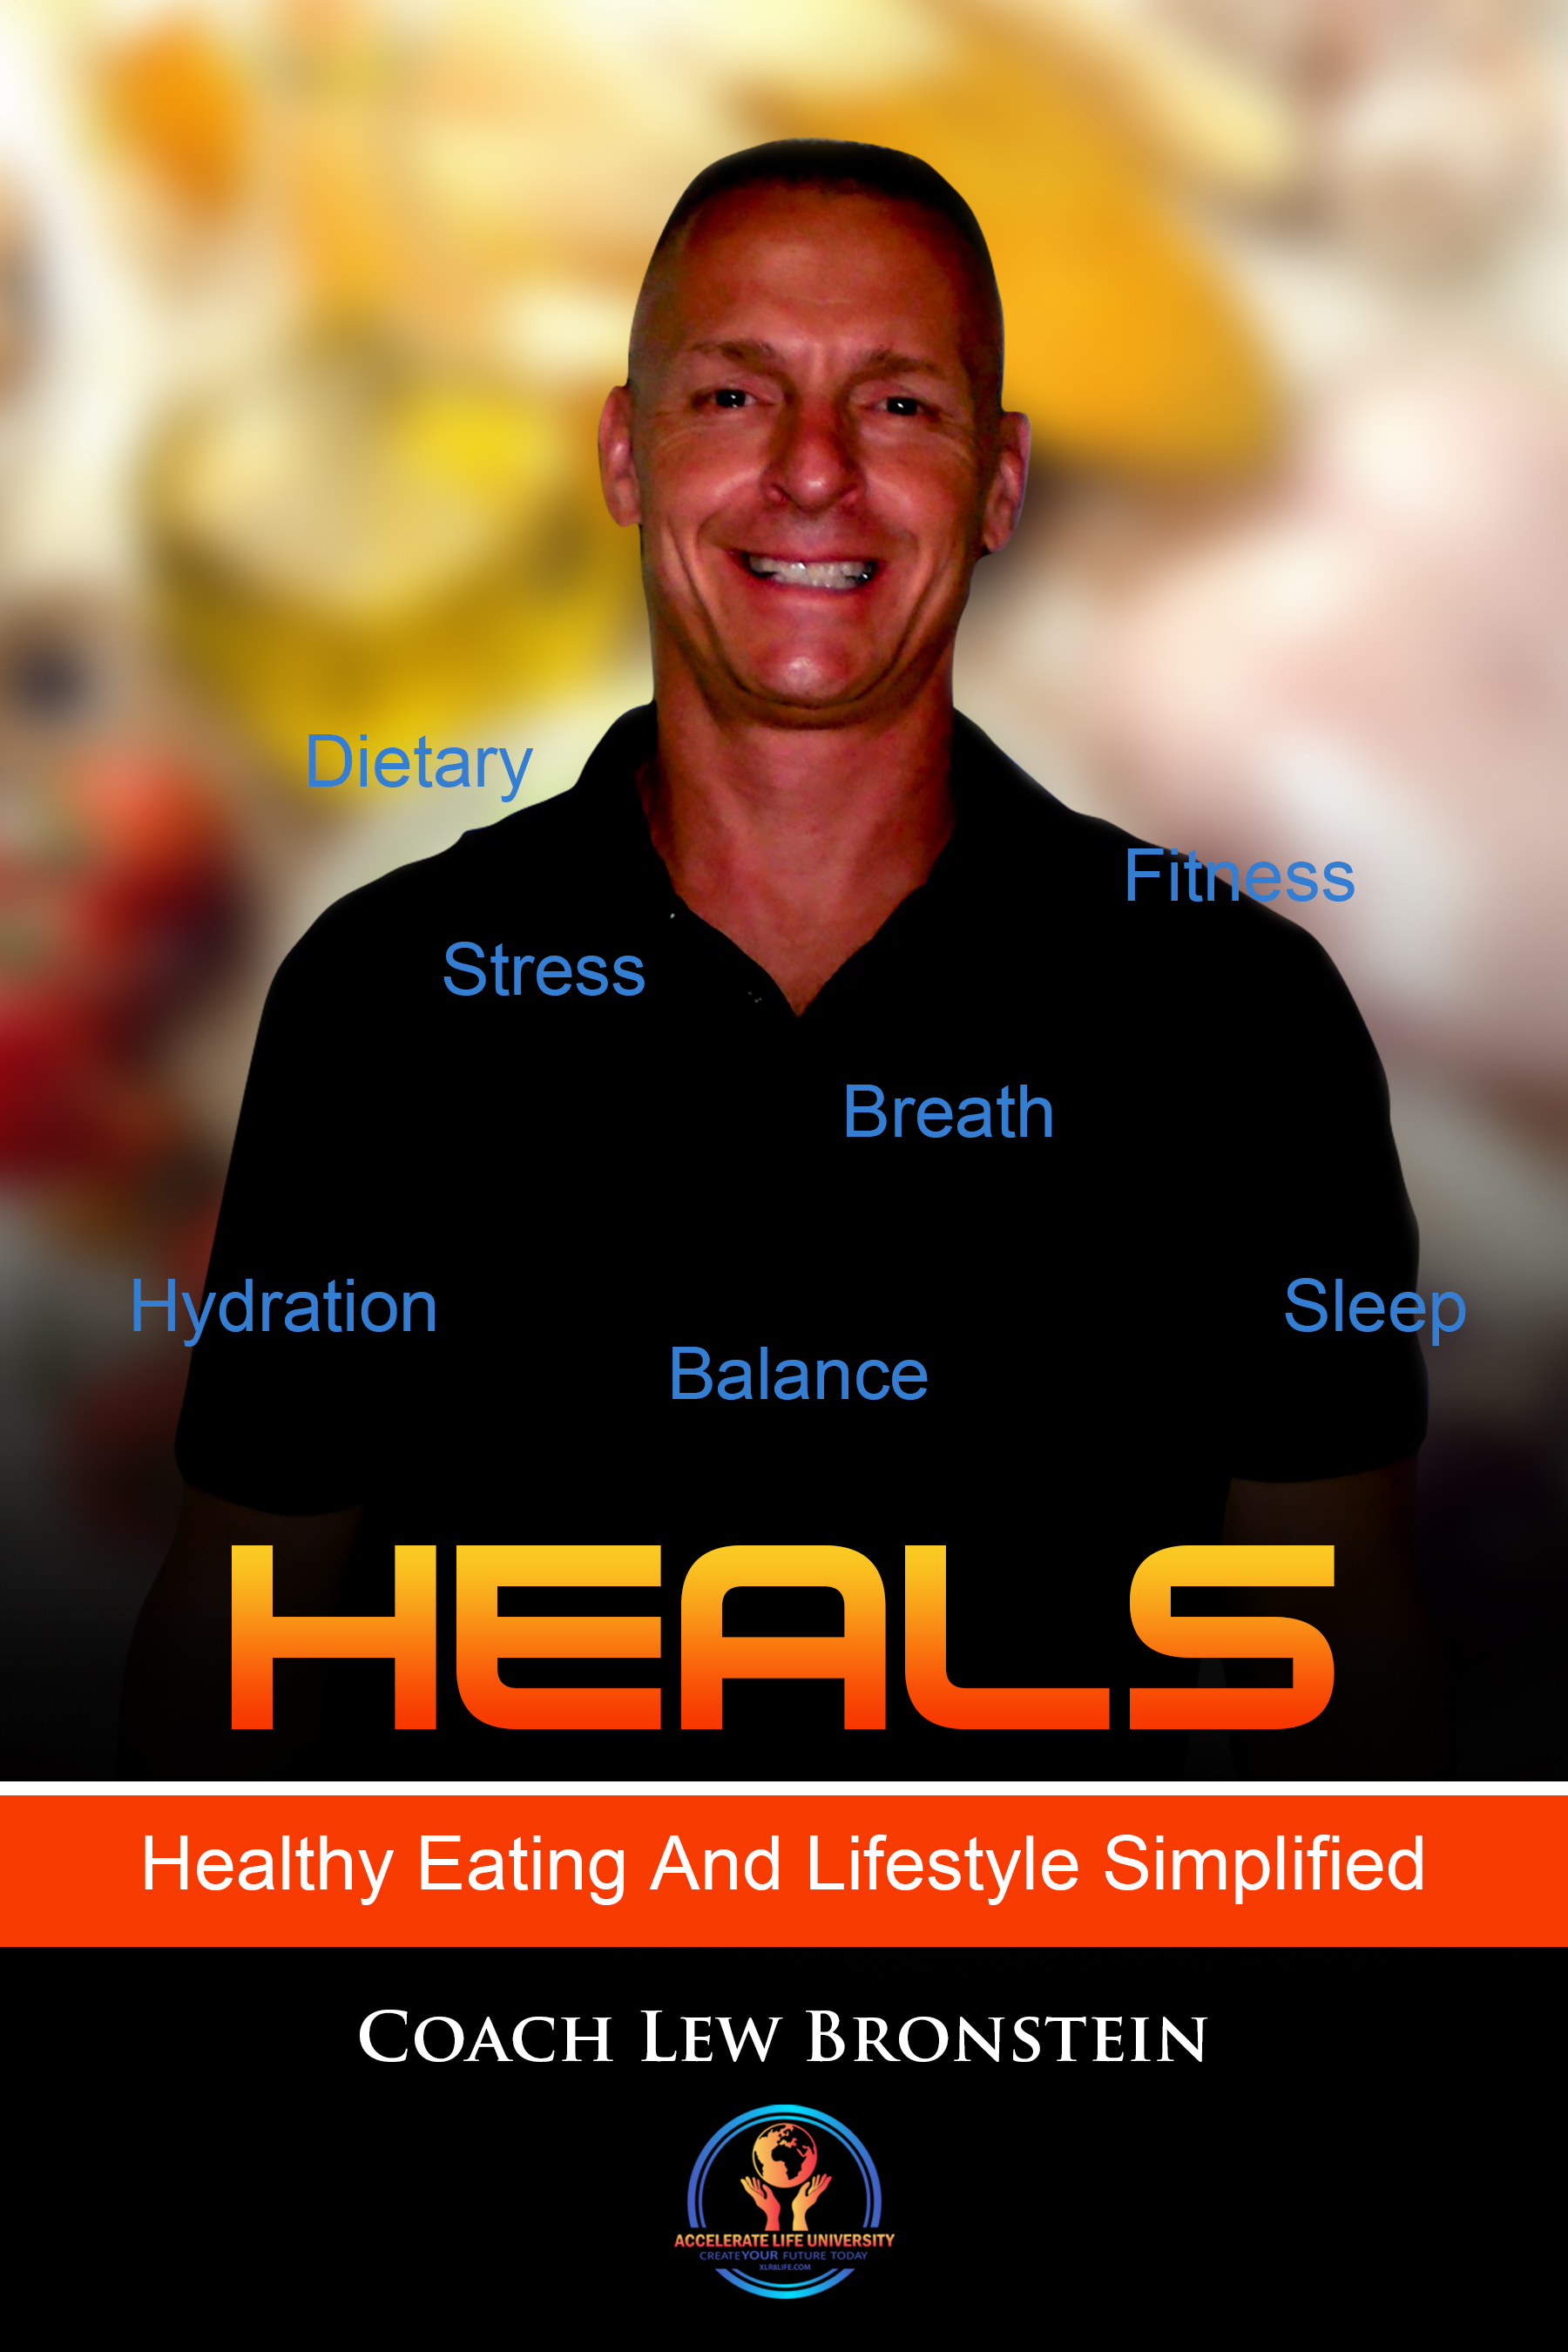 HEALS Health Eating And Lifestyle Simplified 2 Day Workshop